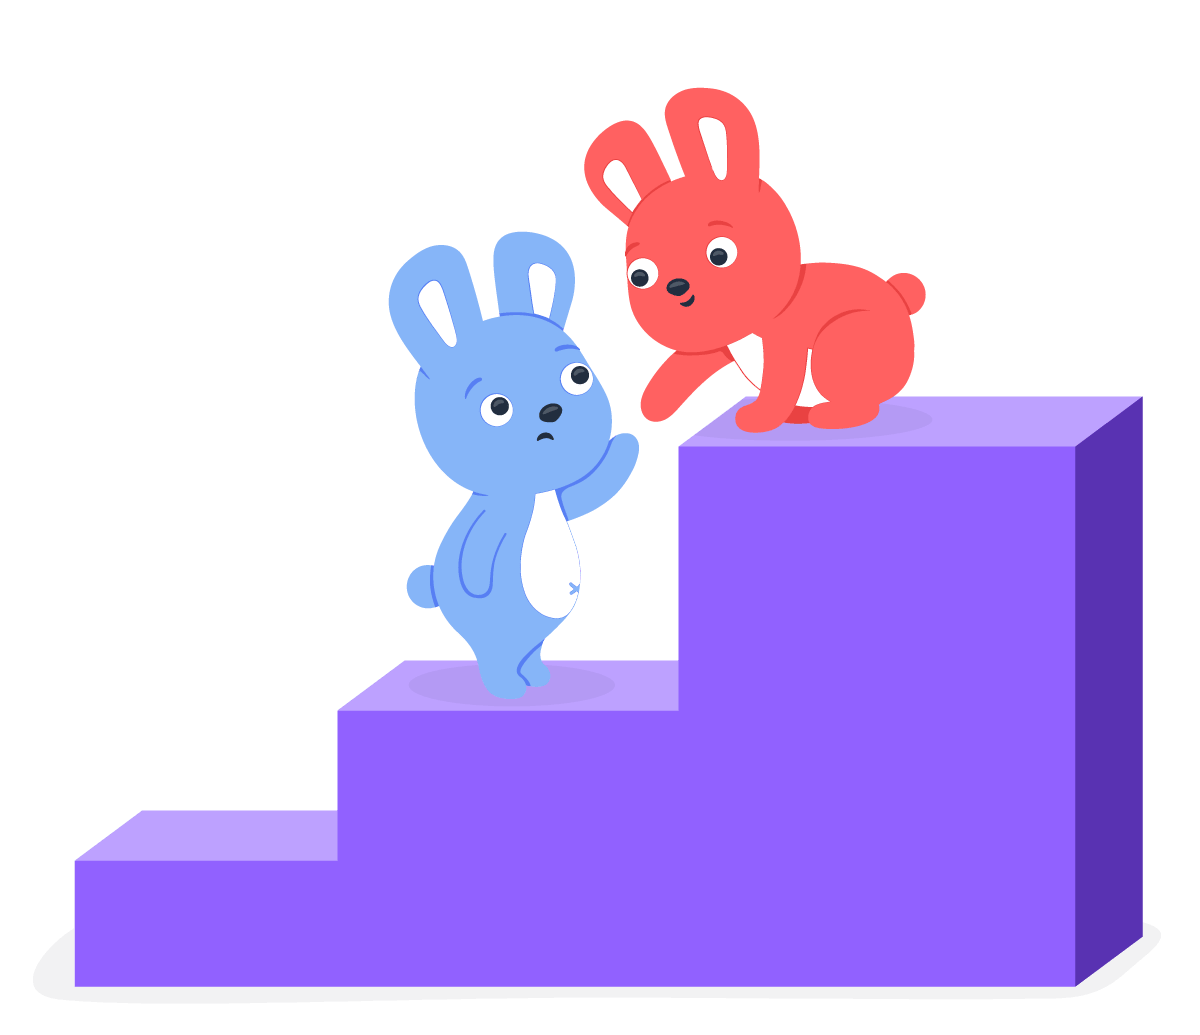 One hoppy bunny helping another Hoppy bunny climb up stairs and help advance their career